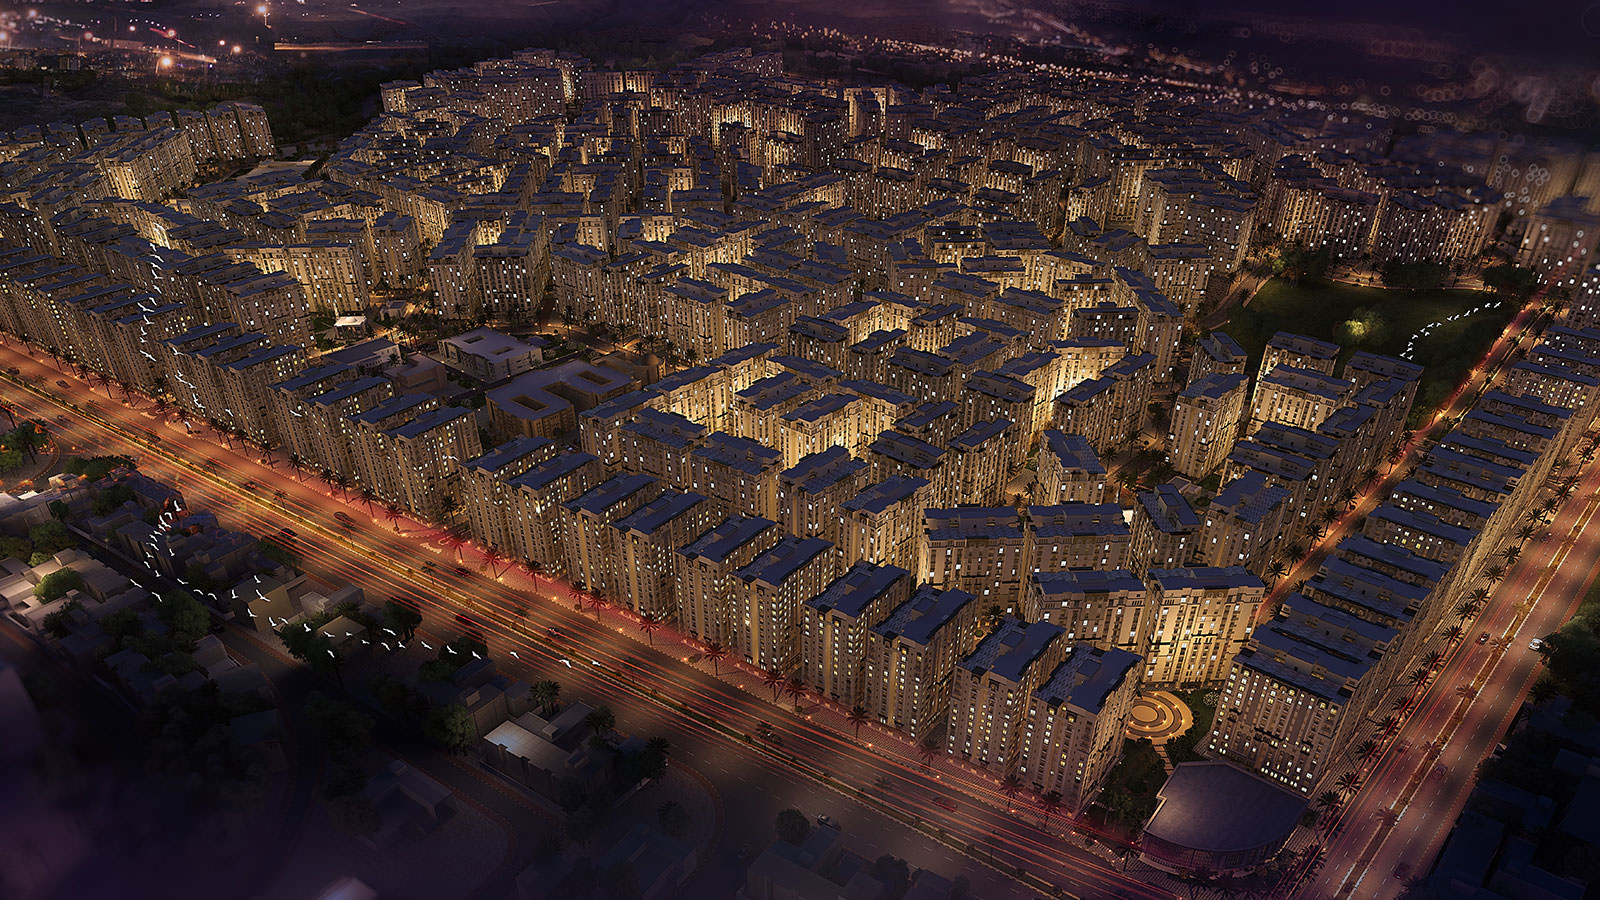 Visualize Your Project With The Right 3D Architectural Animation Services